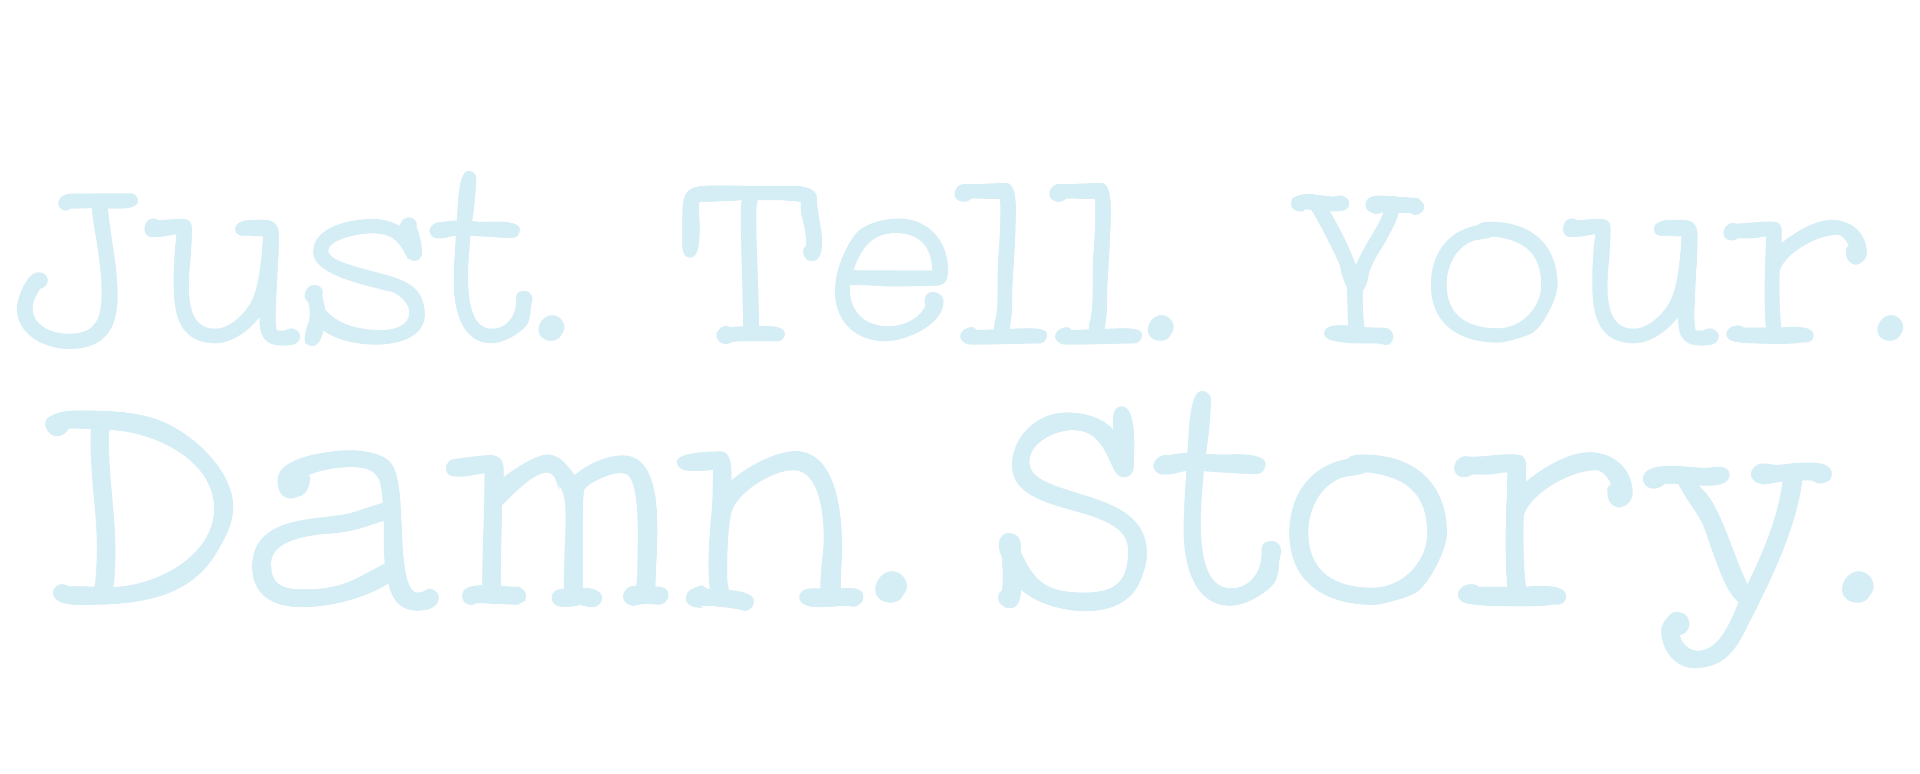 Just tell your damn story